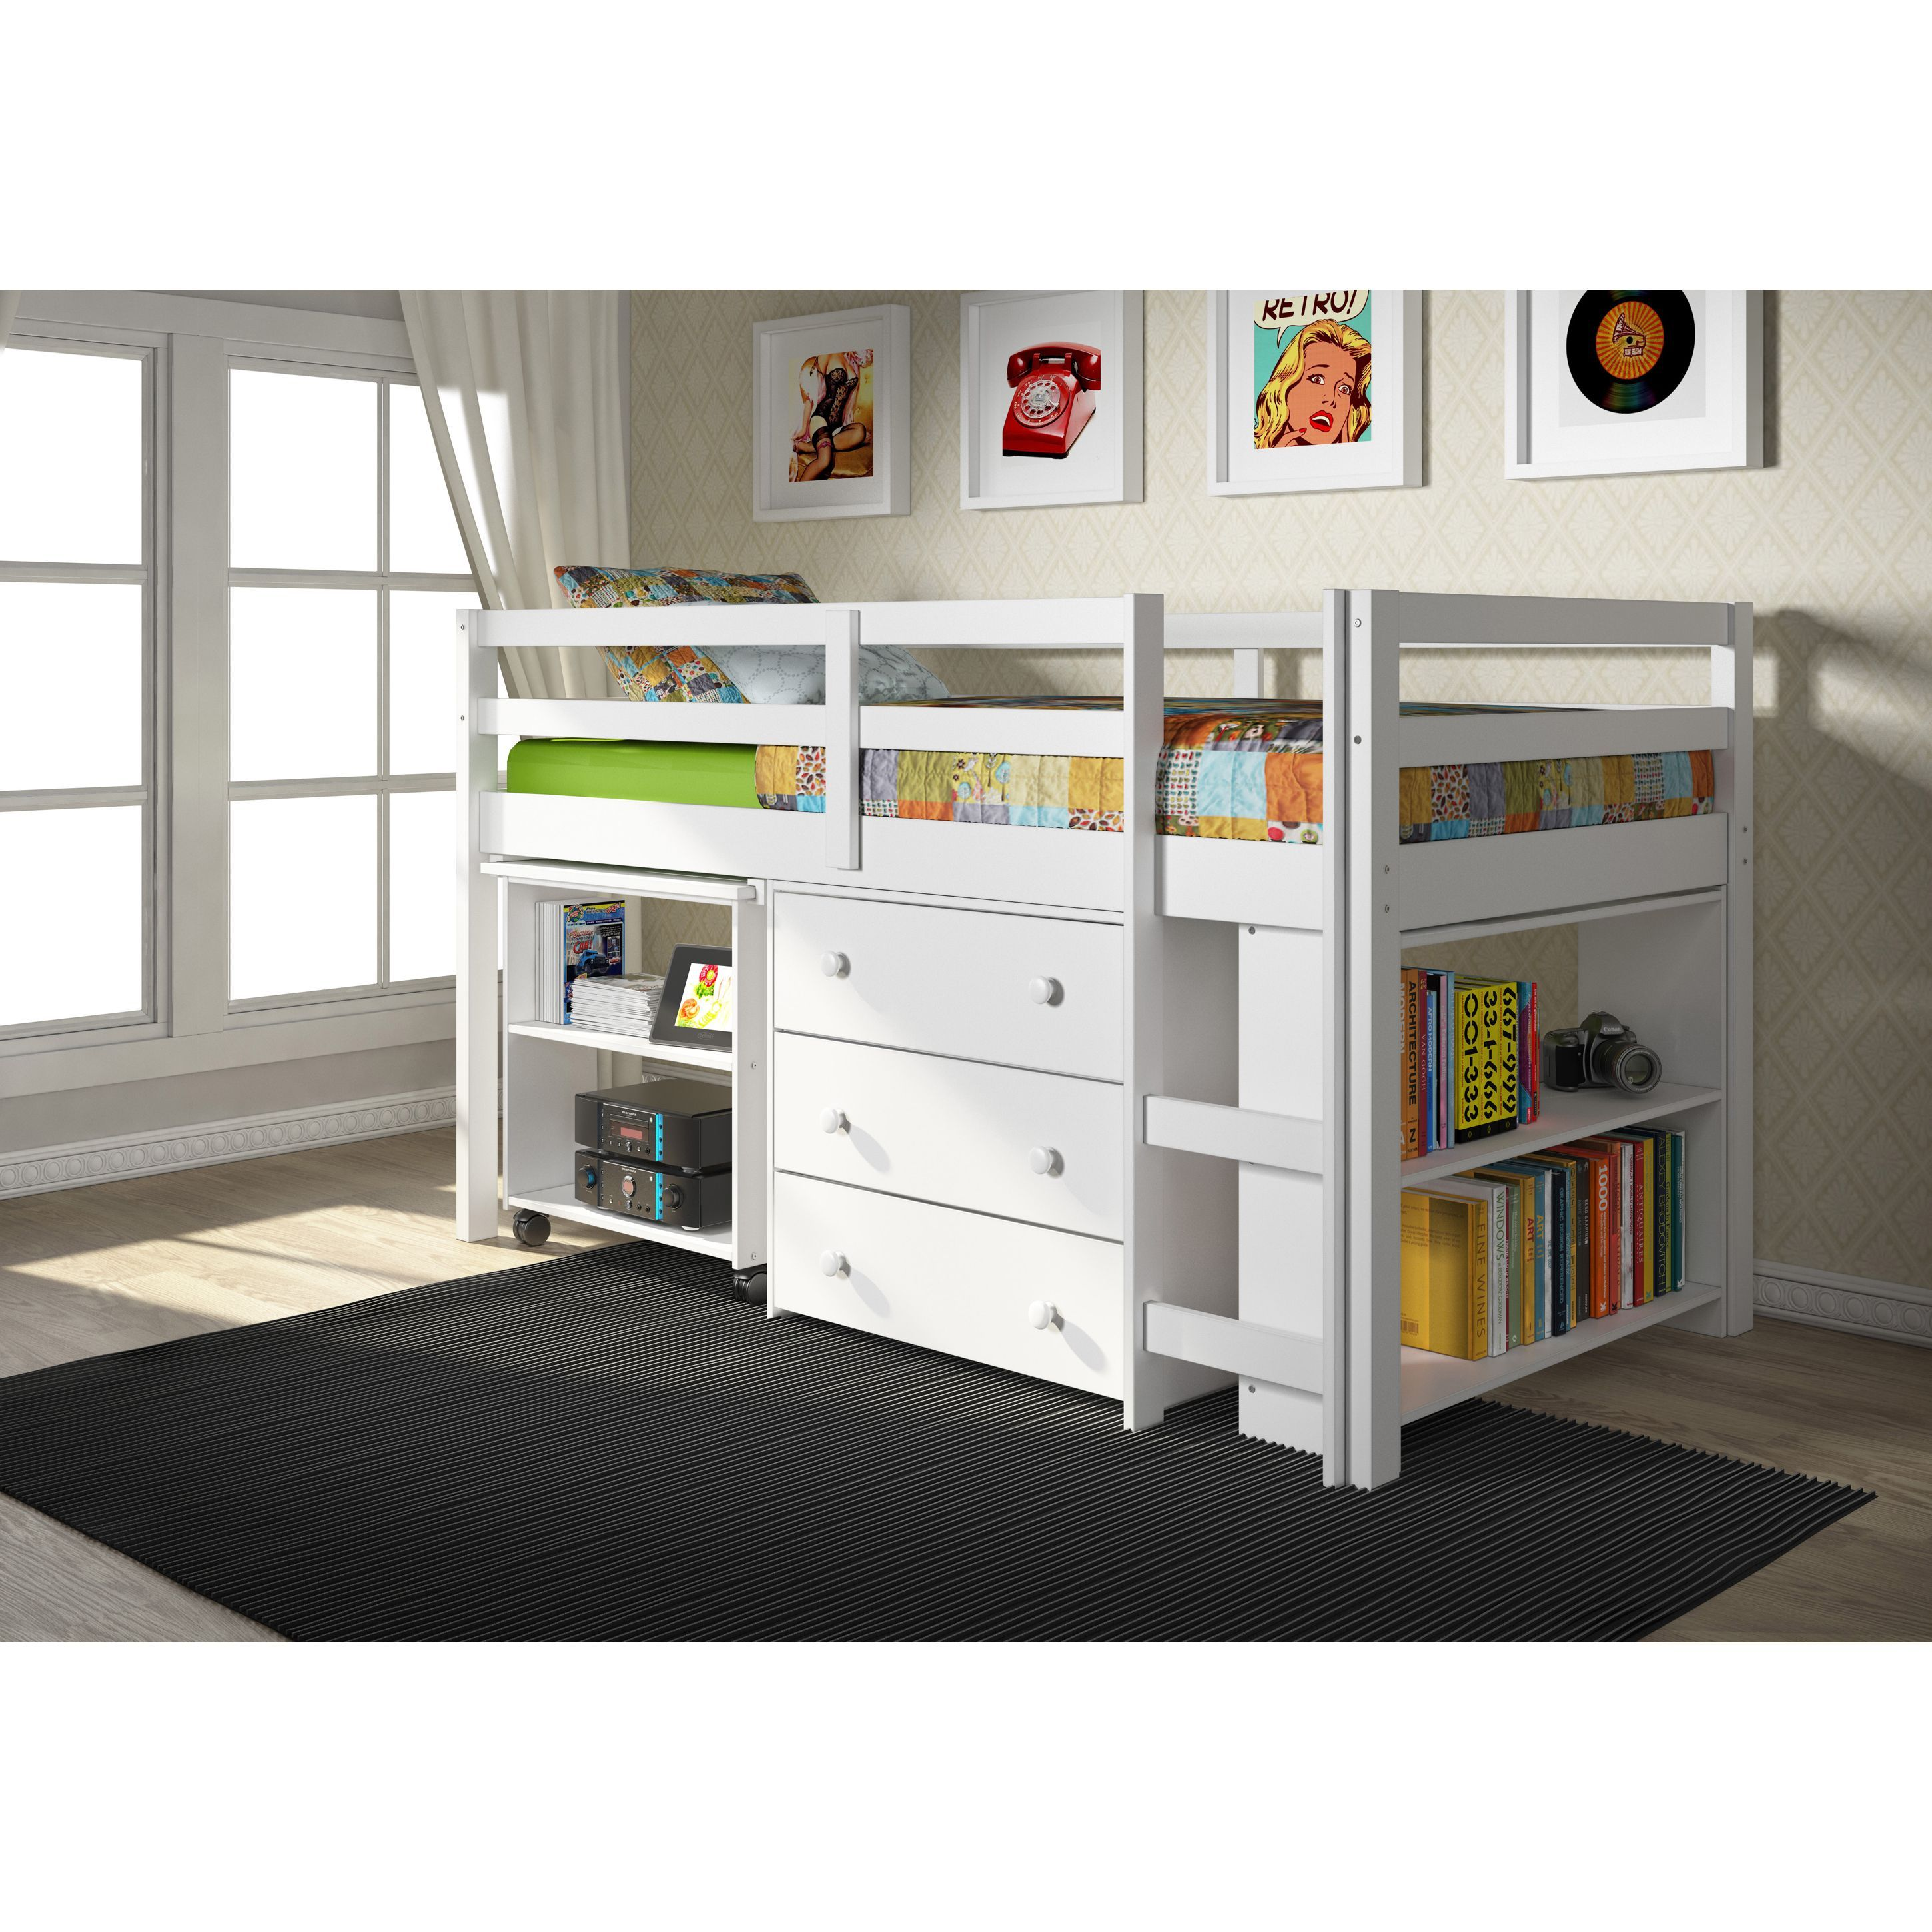 twin low loft beds for kids photo - 2